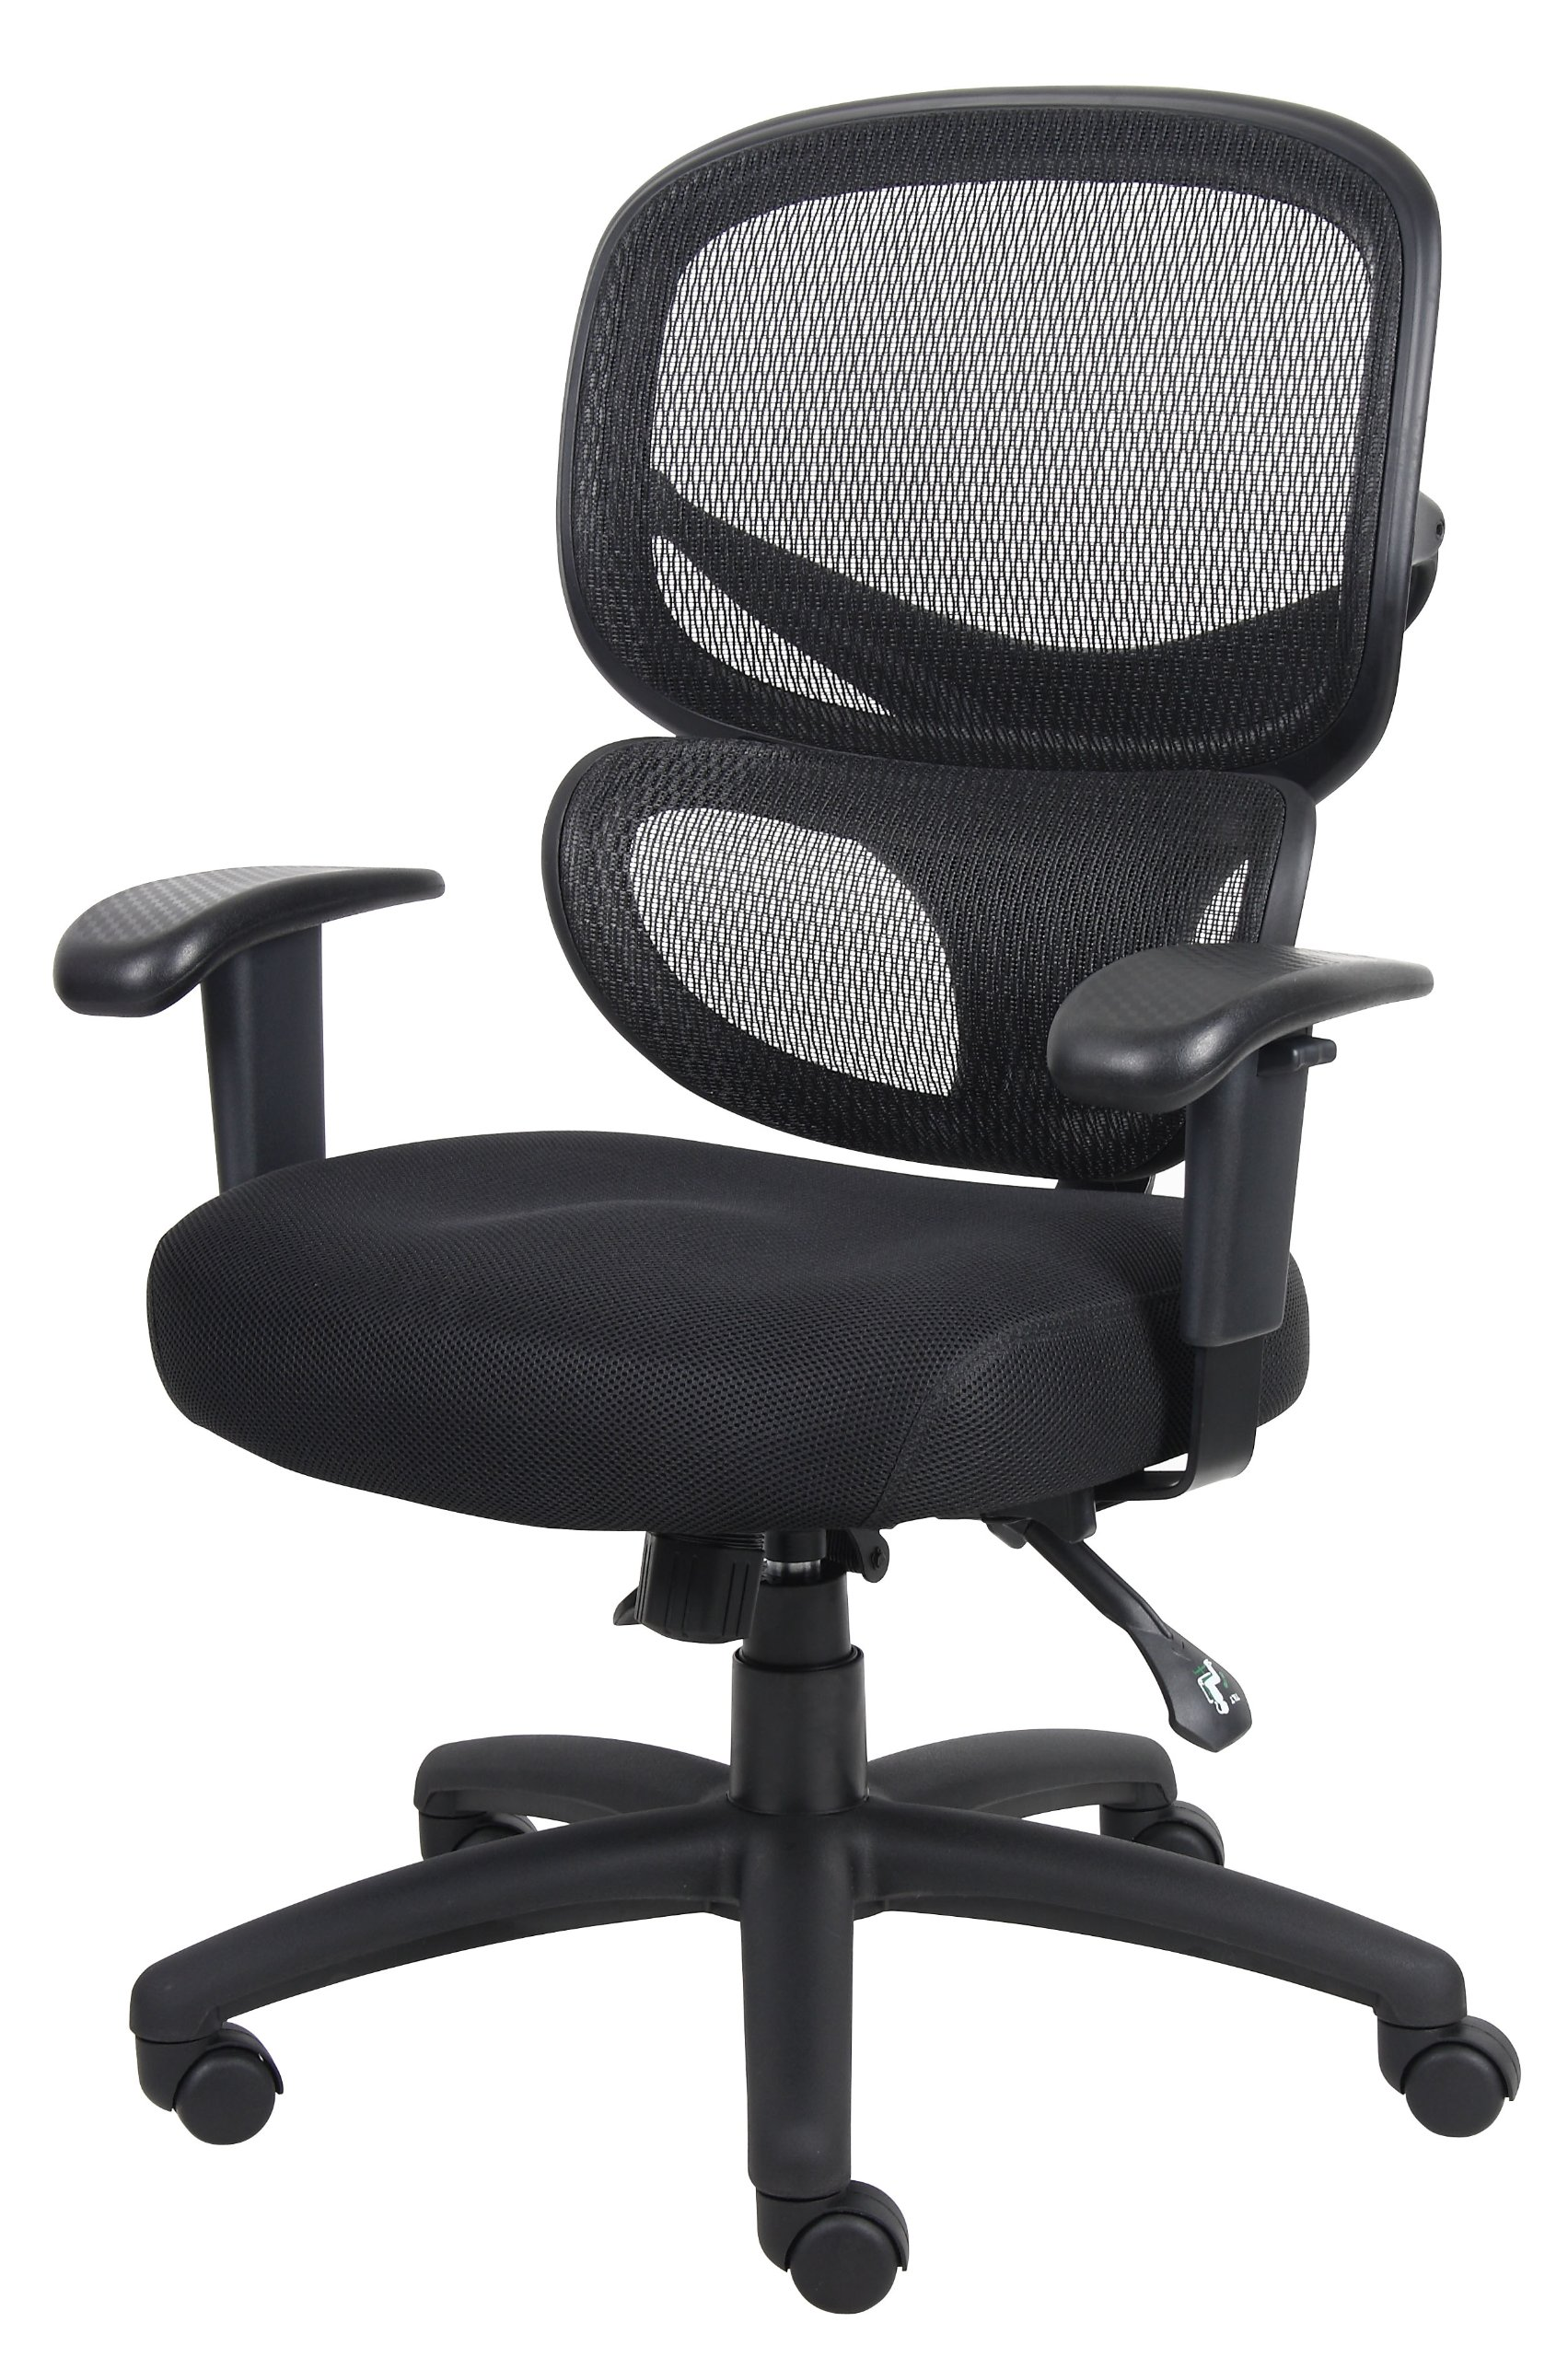 Best Desk Chair For Lower Back Pain Best Executive Ergonomic Office Chair For Back And Hip